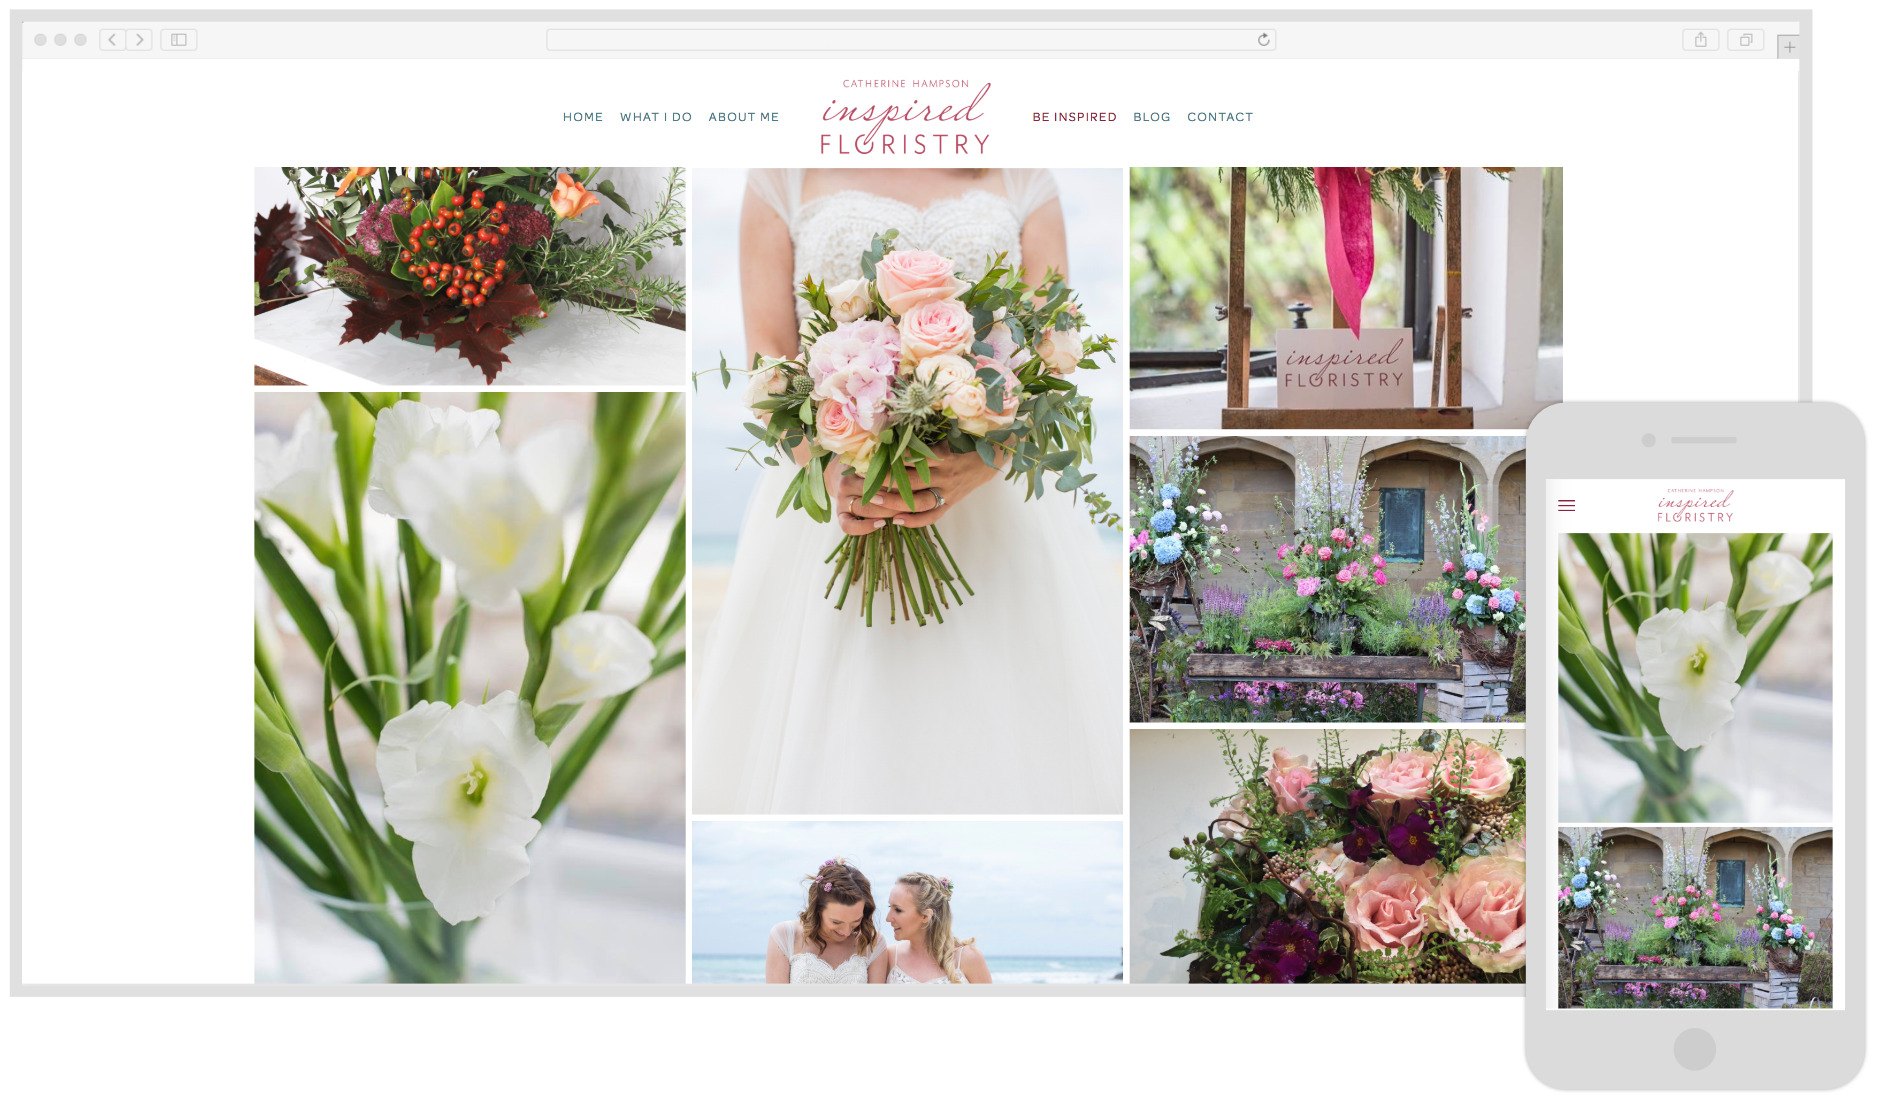 florist-website design.jpg